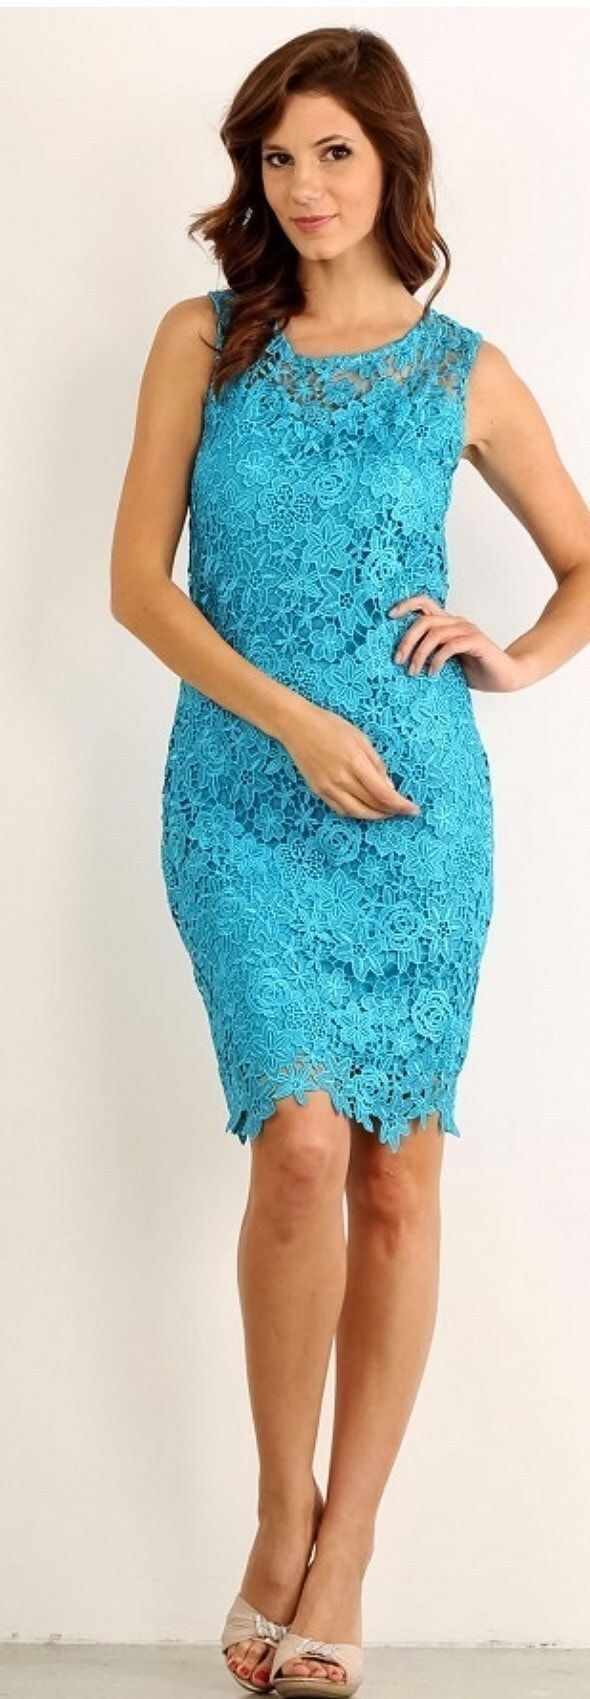 Teal Dress - Illusion Lace Dress - Sheath Dress - Lace Dress | This beautiful teal blue lace dress is such a classic design. This dress would be perfect for all of your formal occasions and semi formal occasions. This evening dress would also work well as a party dress, cocktail dress, formal dress, semi formal dress, and bridesmaid dress. Looking for the perfect dress for your engagement party, bachelorette party, bridal shower, rehearsal dinner, homecoming or prom dress.